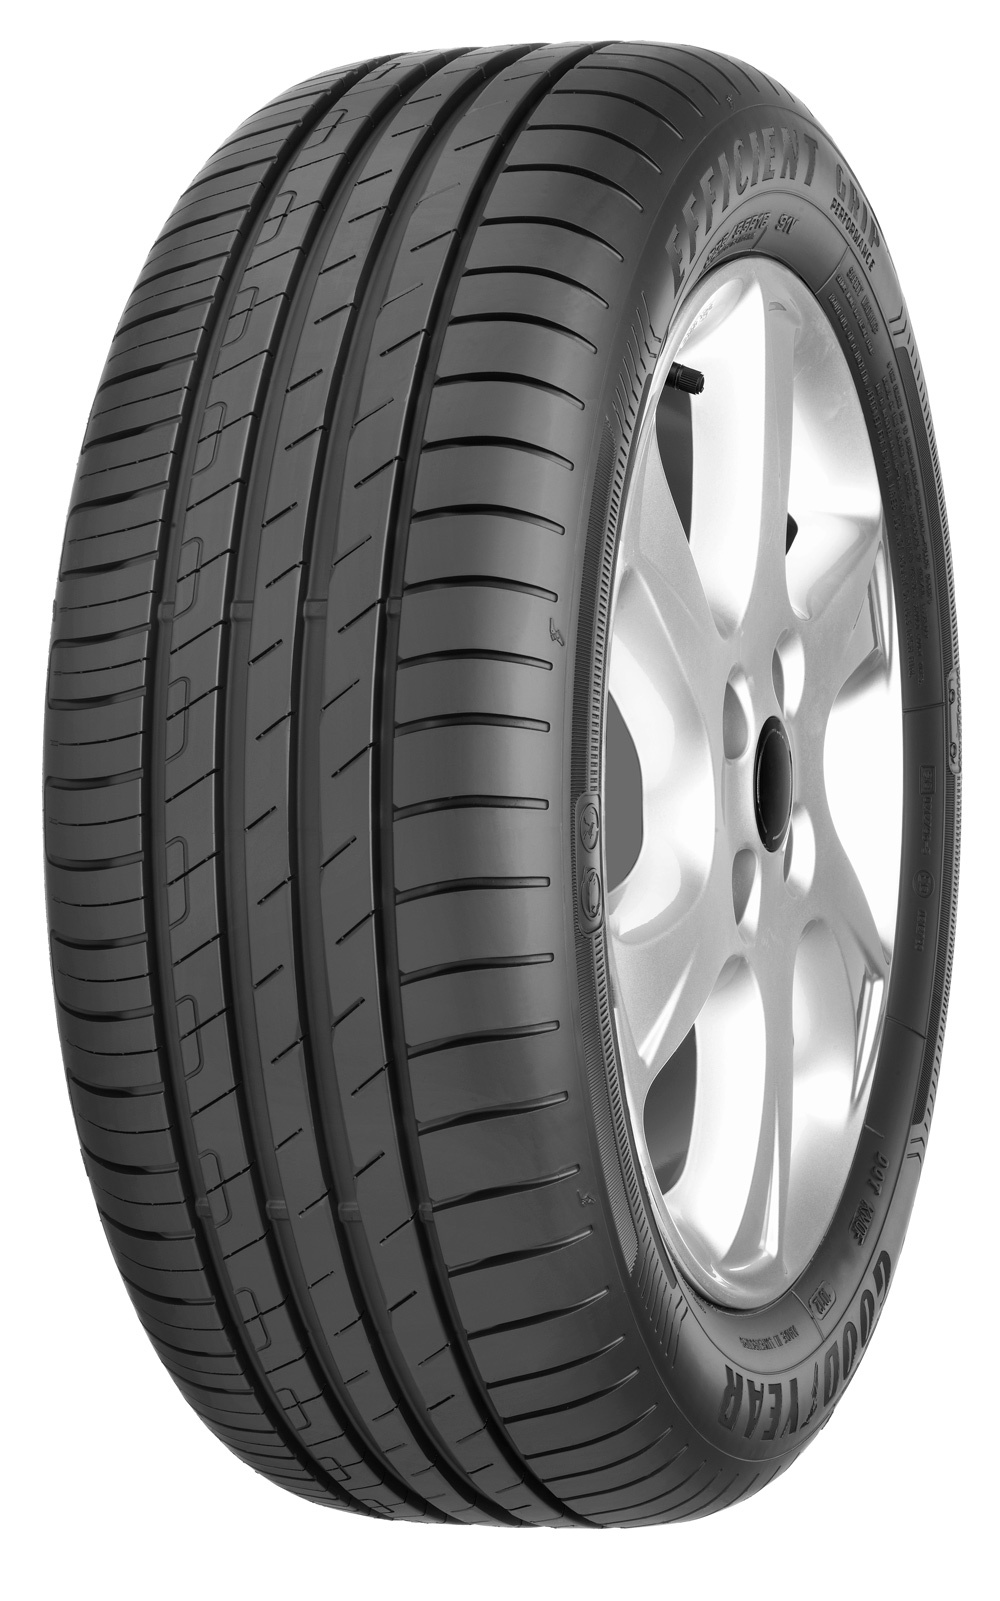 Шина 195/55R15 85H EFFICIENTGRIP (Goodyear) фото, цена